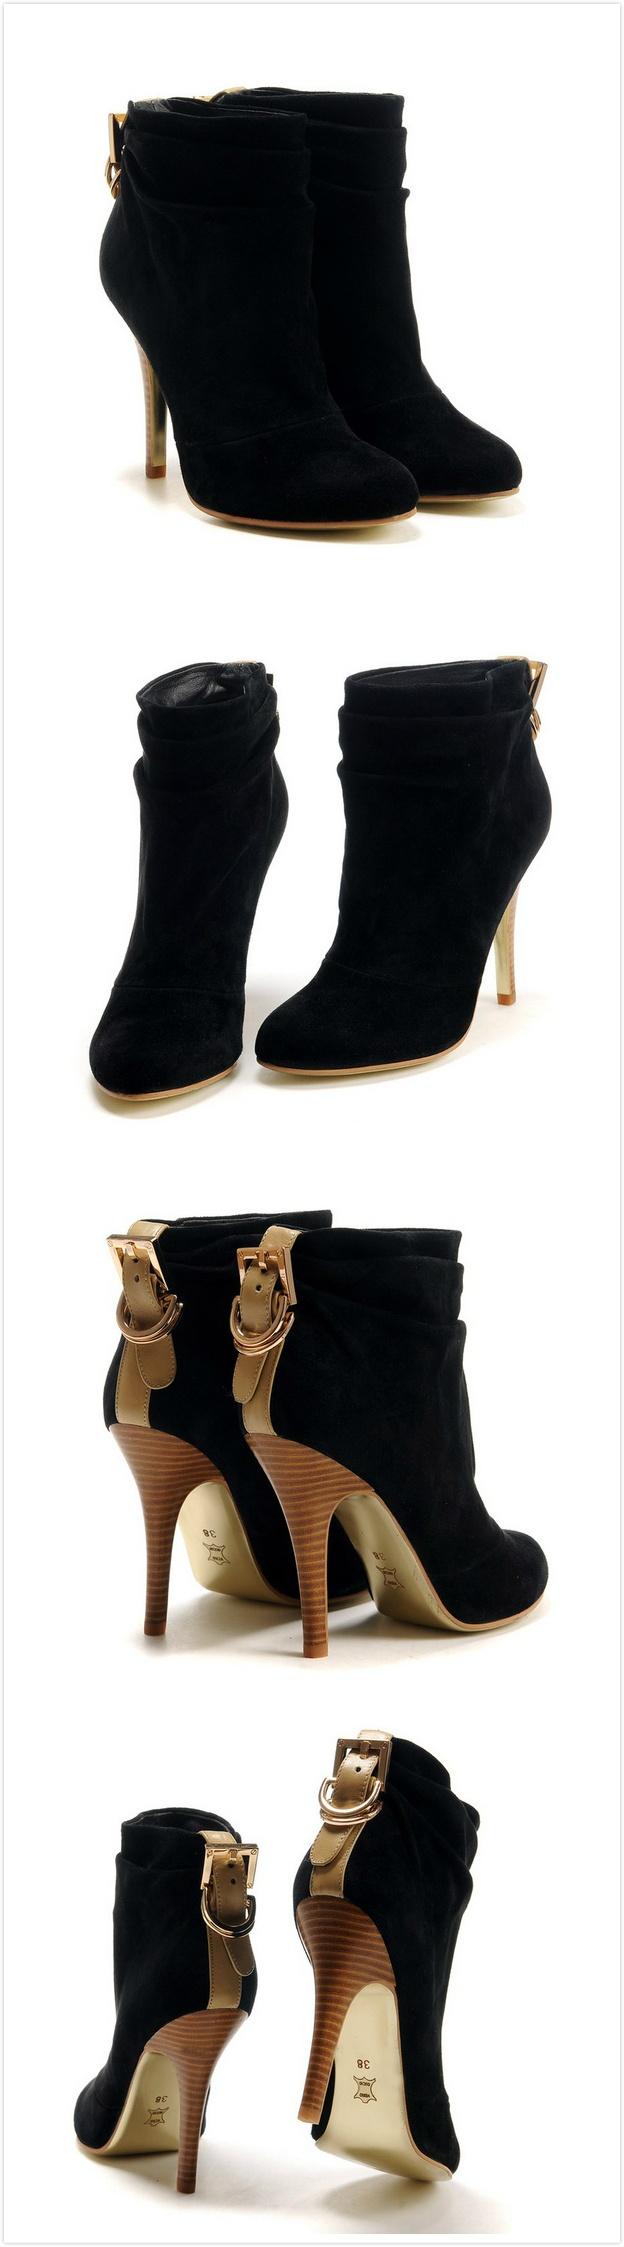 Tory Burch Boots Outlet! Tory Burch Black Slouchy Boots 6549